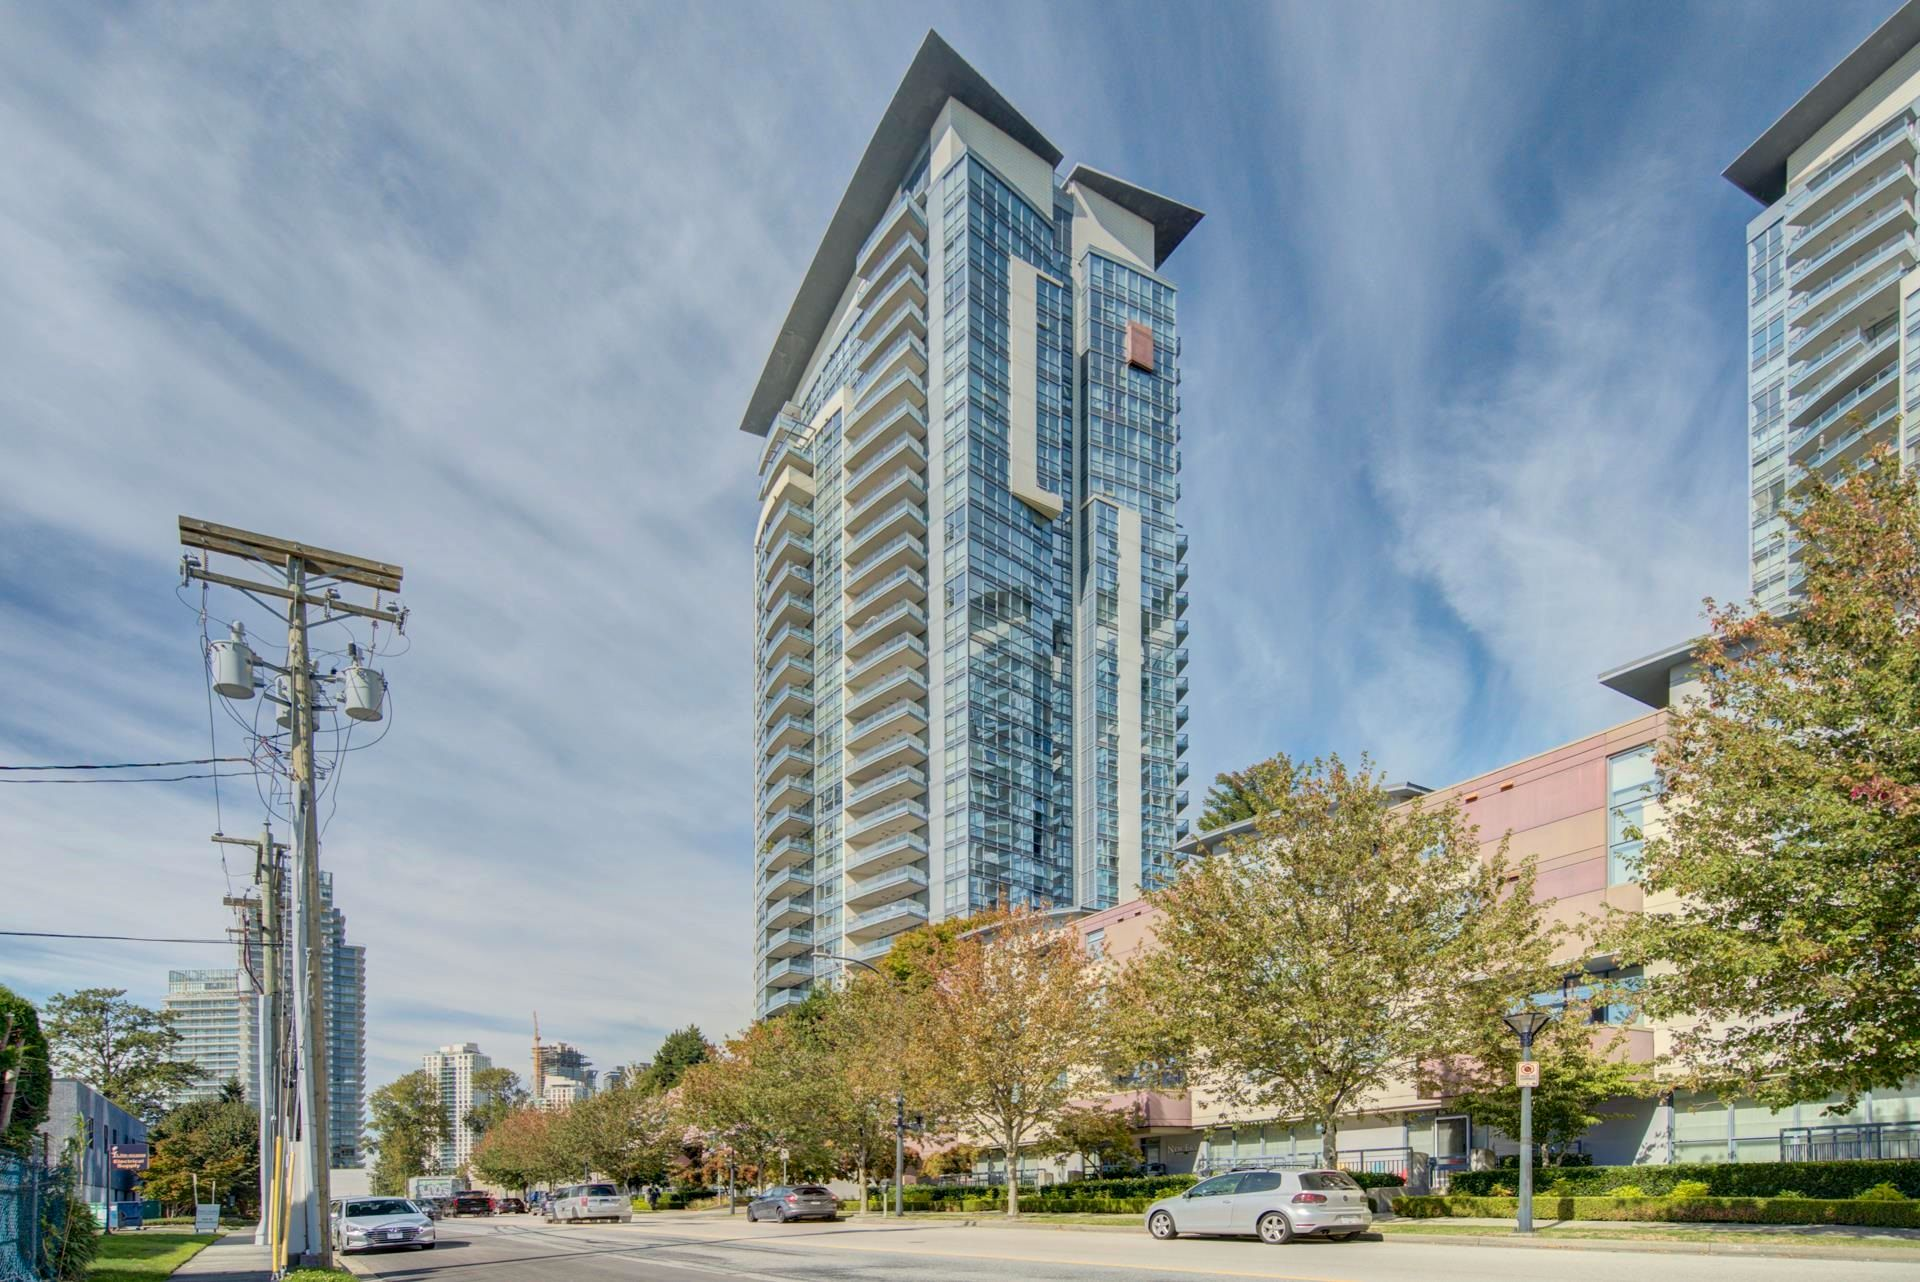 """Main Photo: 1206 5611 GORING Street in Burnaby: Central BN Condo for sale in """"LEGACY II"""" (Burnaby North)  : MLS®# R2619138"""